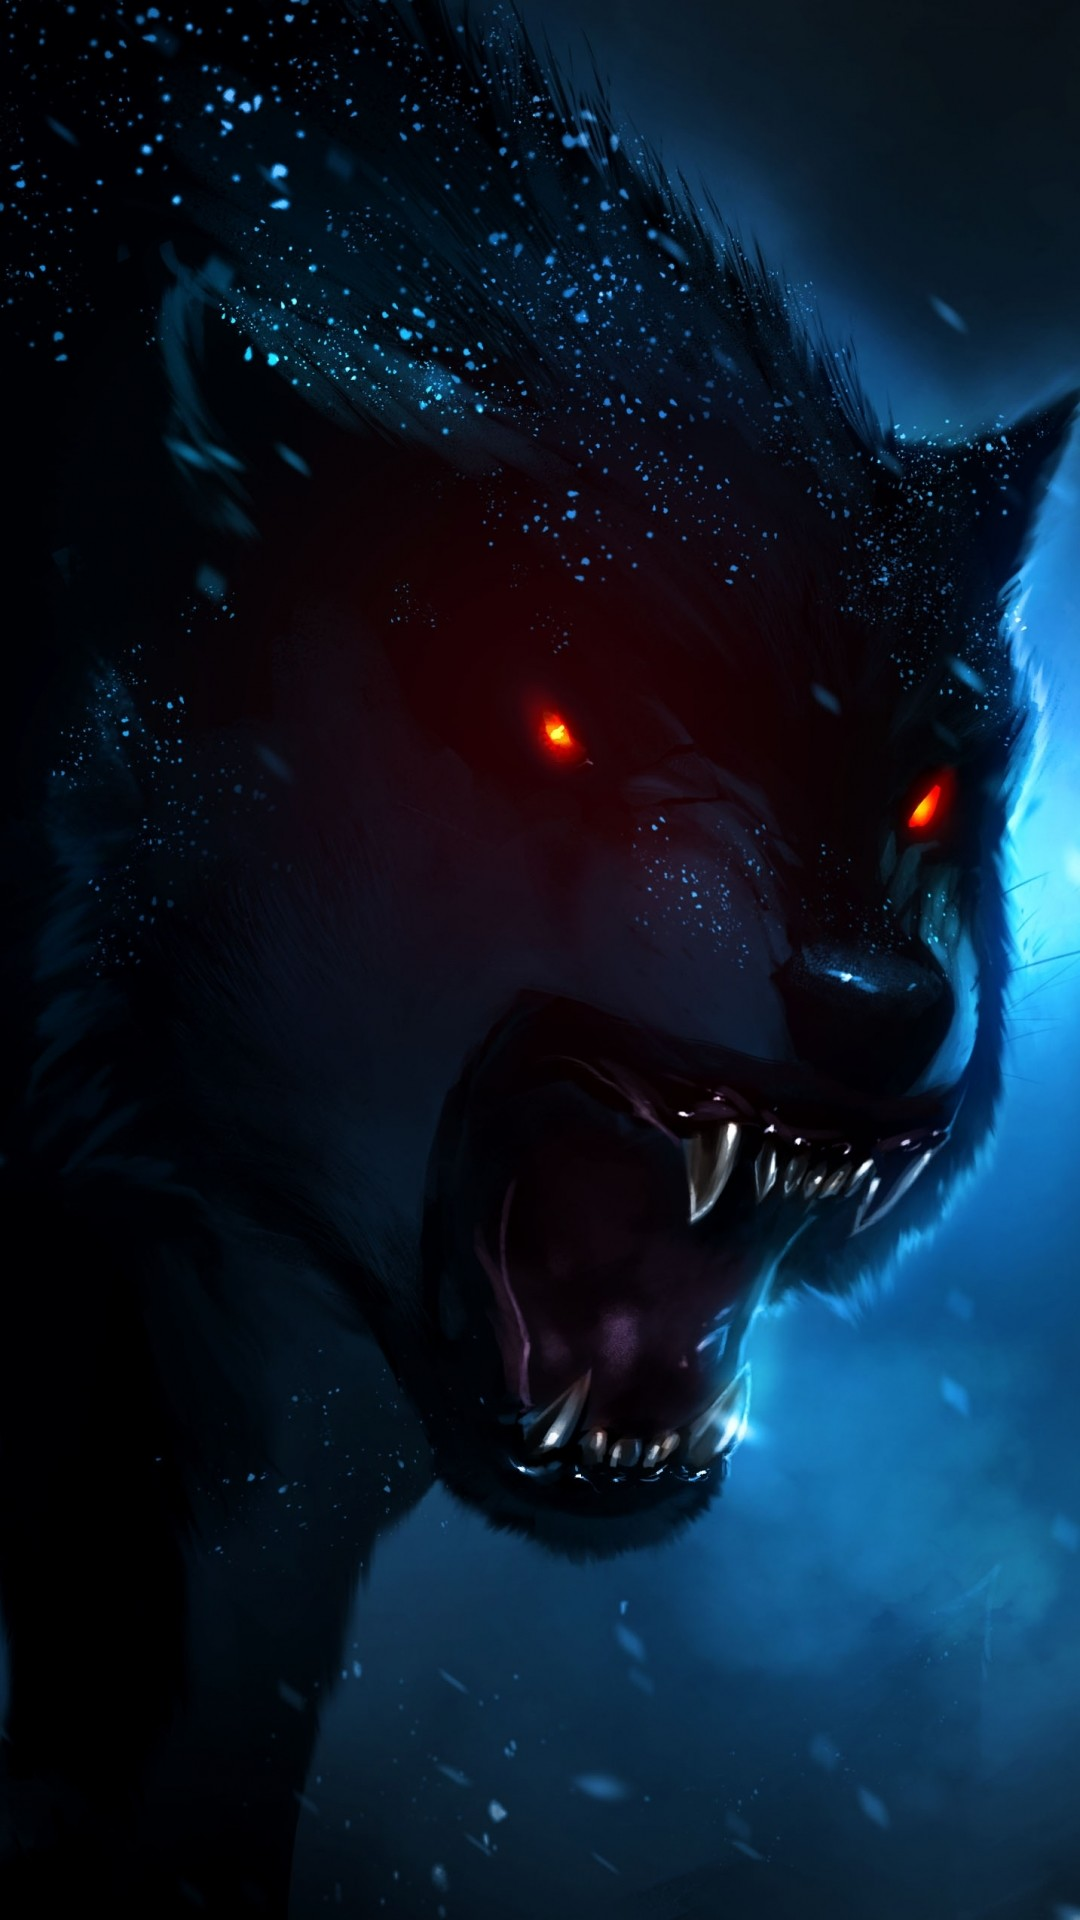 iPhone 6S – Fantasy/Wolf – Wallpaper ID: 578390